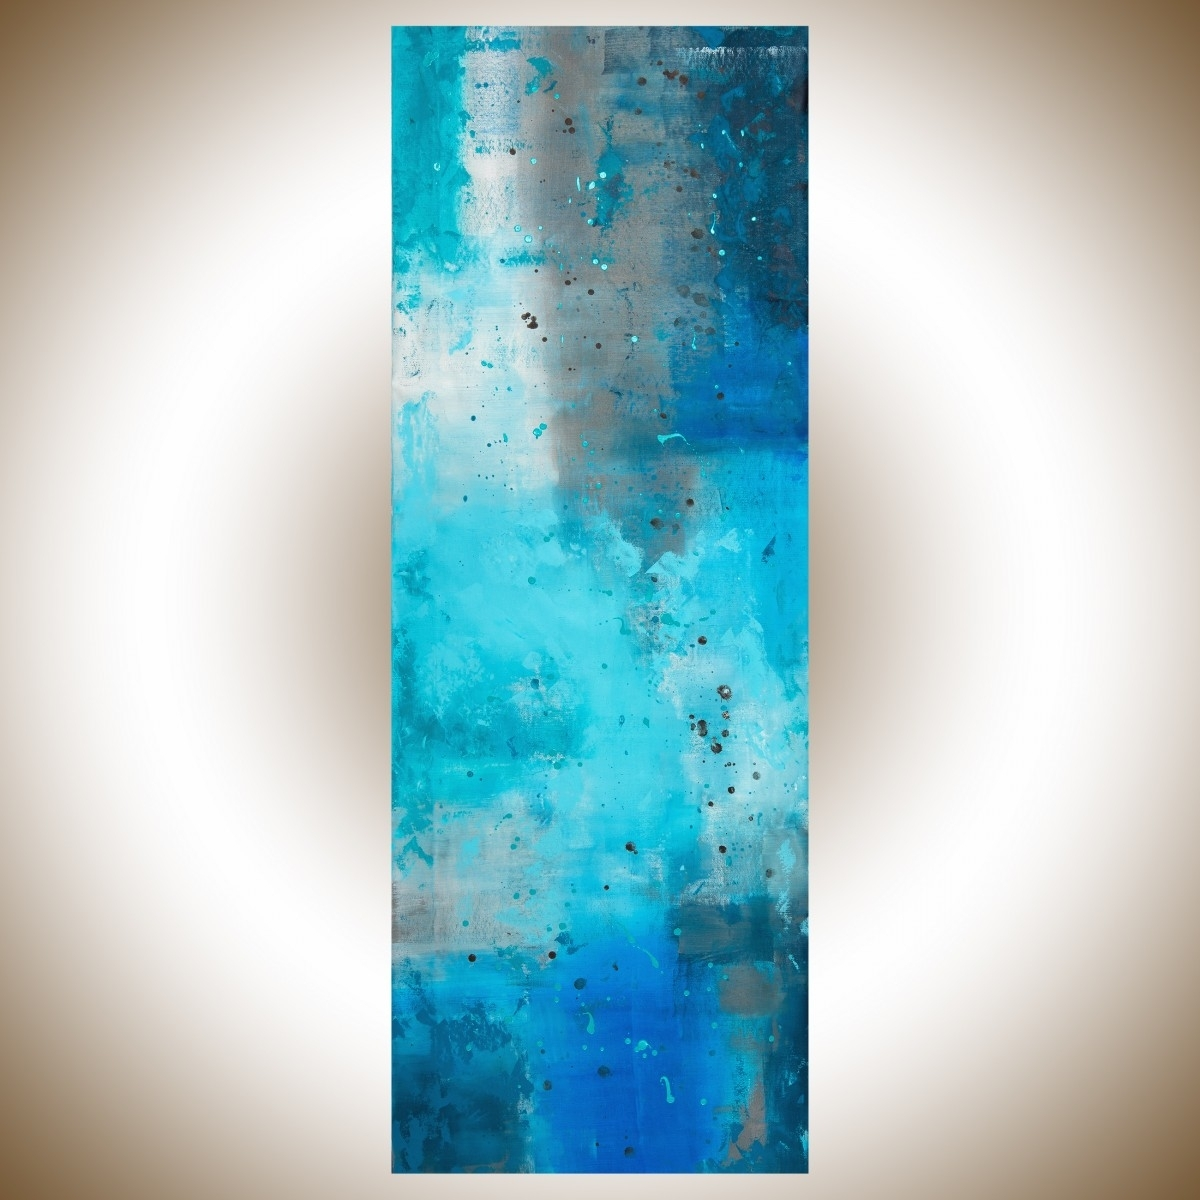 "The Mistqiqigallery 70""x24"" Un Stretched Canvas Original Modern Regarding Most Recent Oversized Teal Canvas Wall Art (View 9 of 20)"